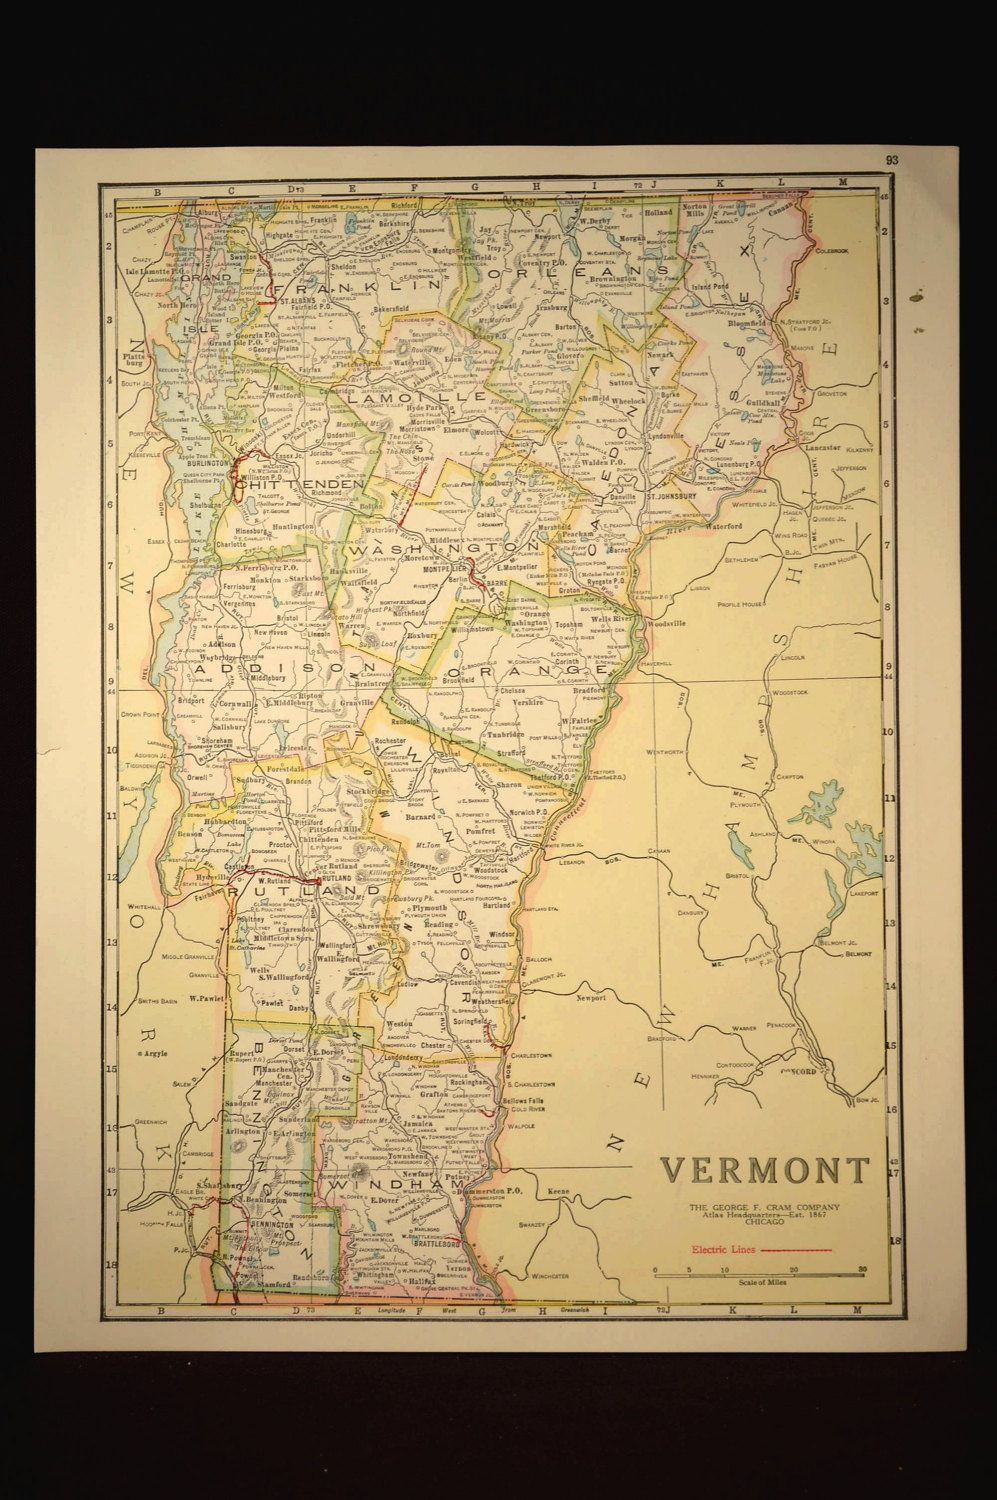 TWO SIDED Antique Road Map Vermont Map Original Highway Roadway - Antique road maps